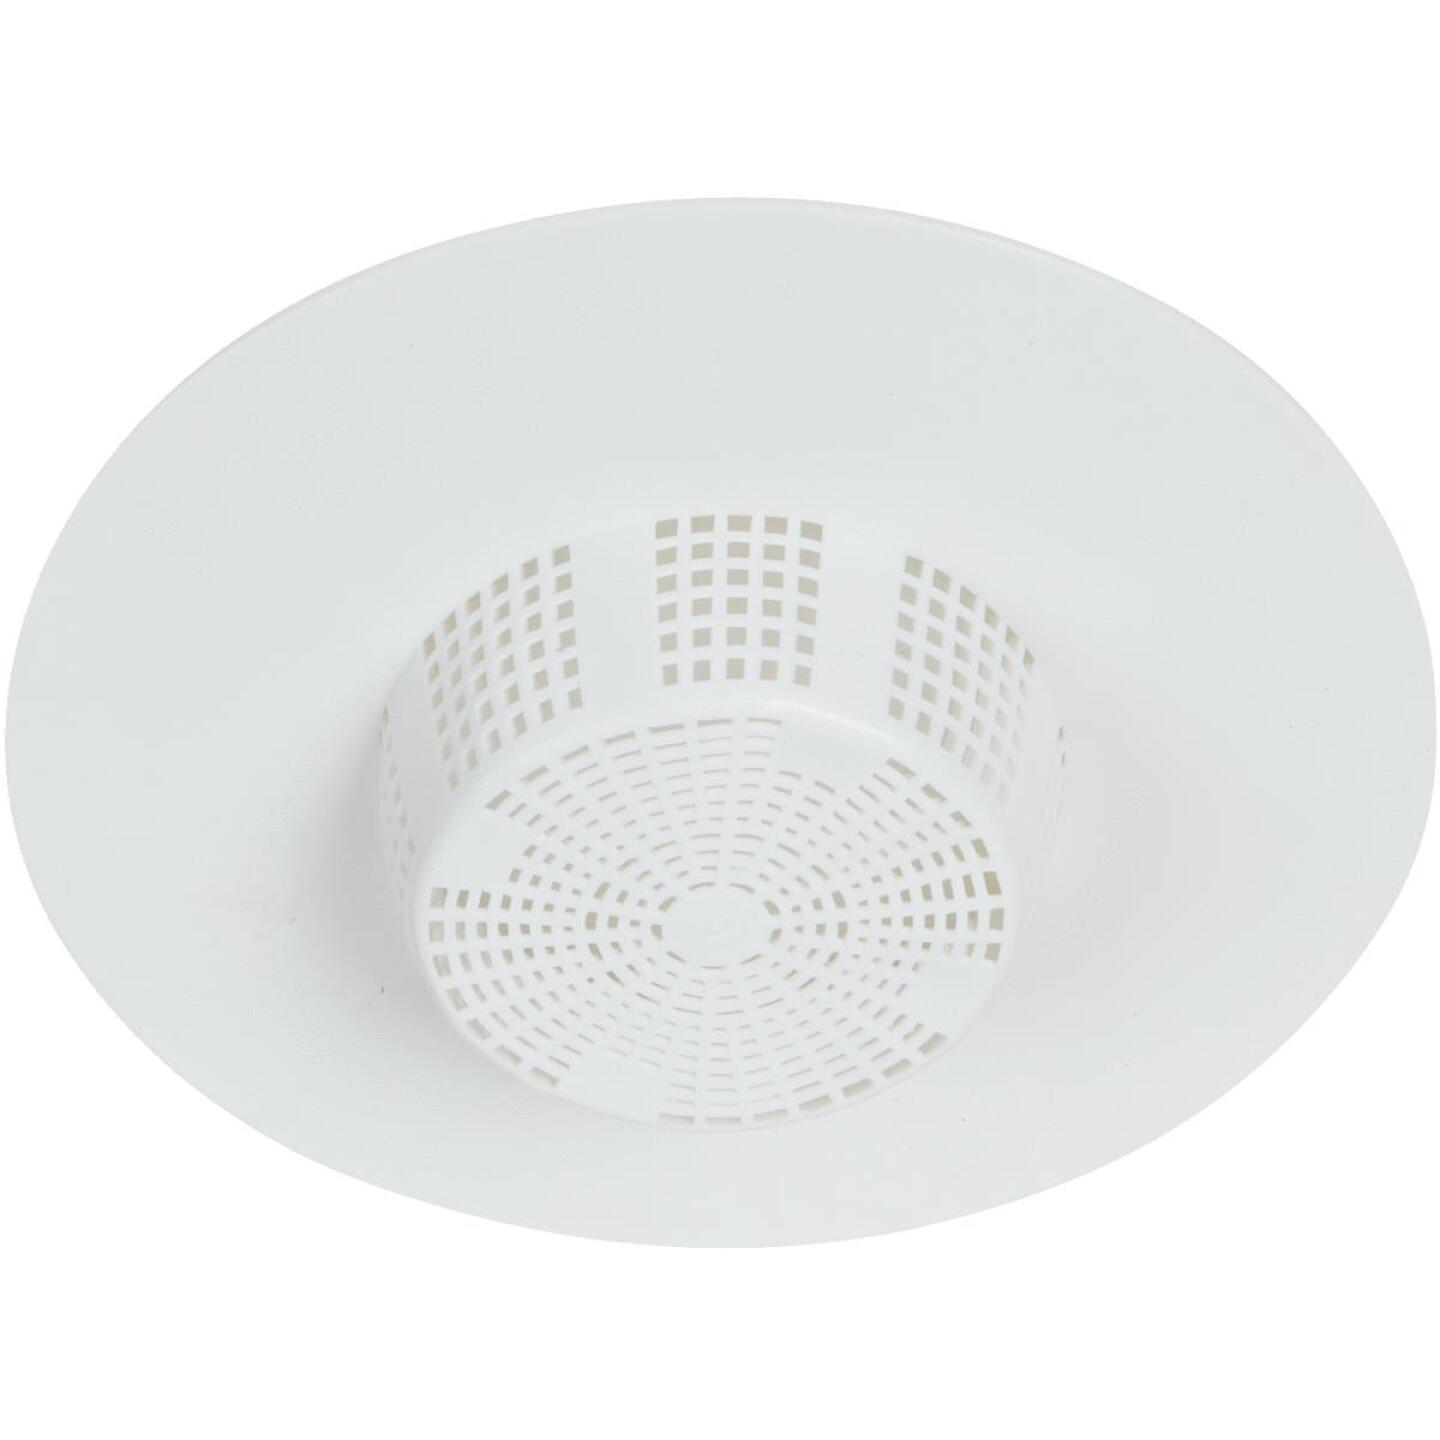 Do it White Hair Snare Sink/Tub Drain Strainer Image 2